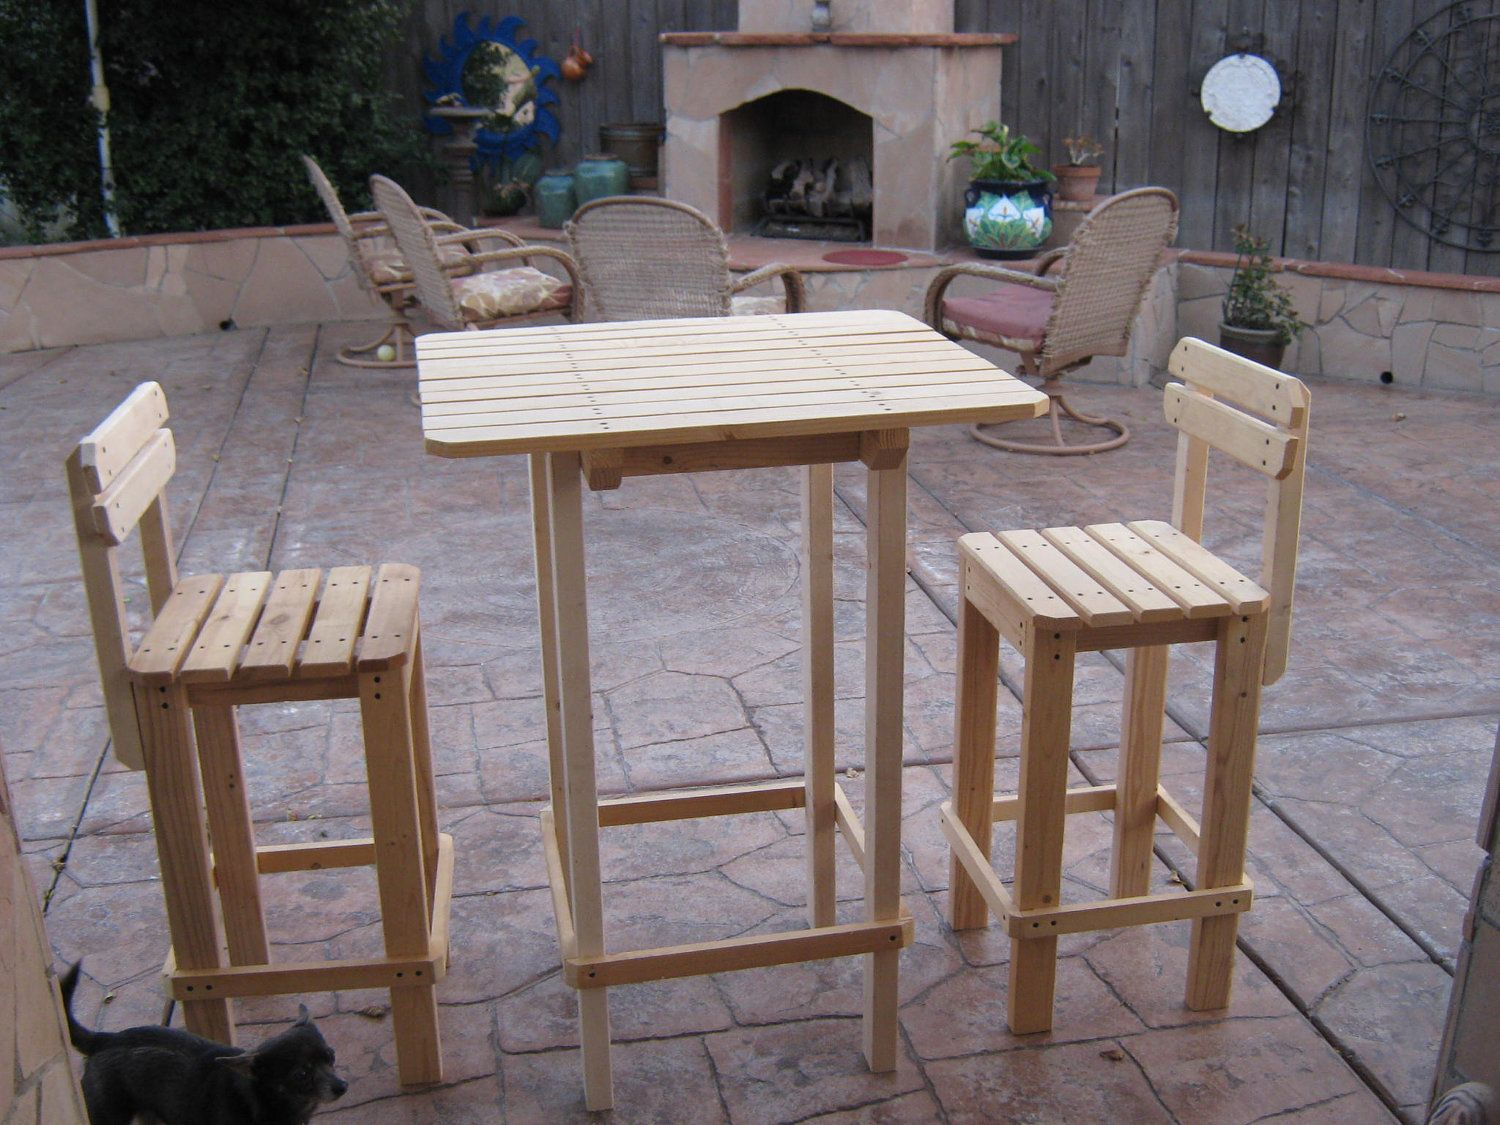 Diy Outdoor Furniture Plans For Patio Lawn Or Garden Bar